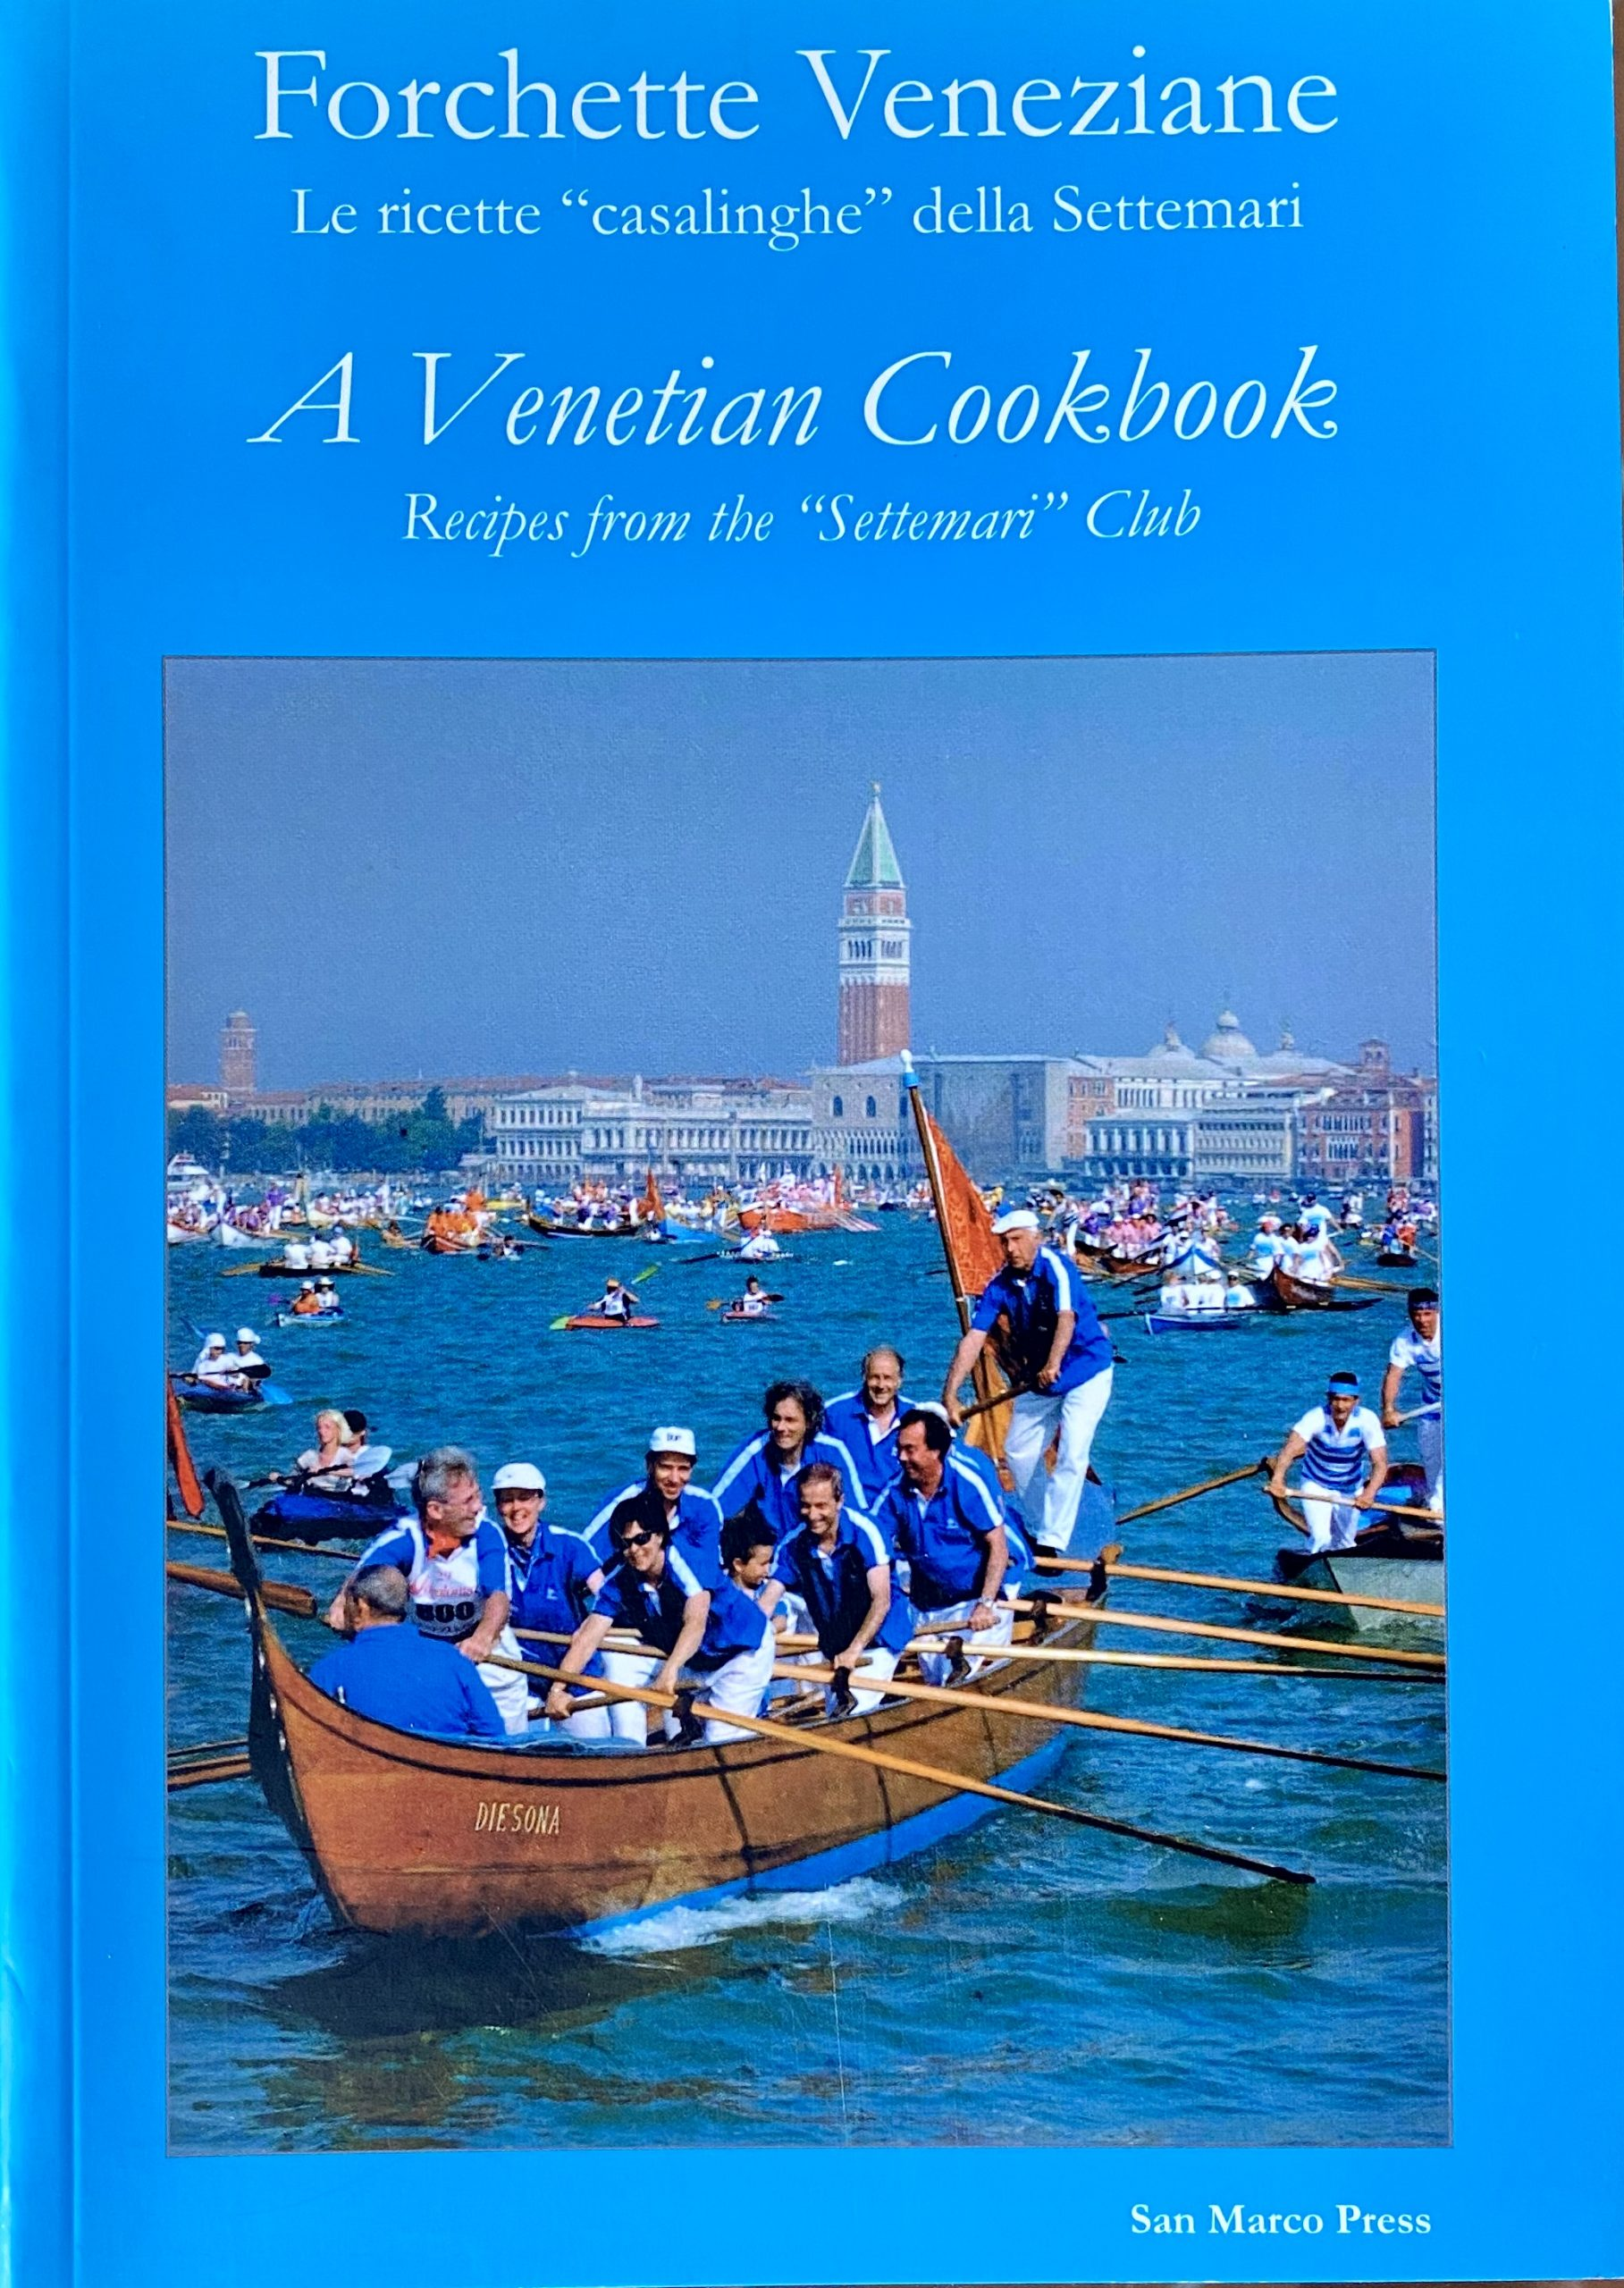 In English and Italian, a cookbook of Venetian recipes